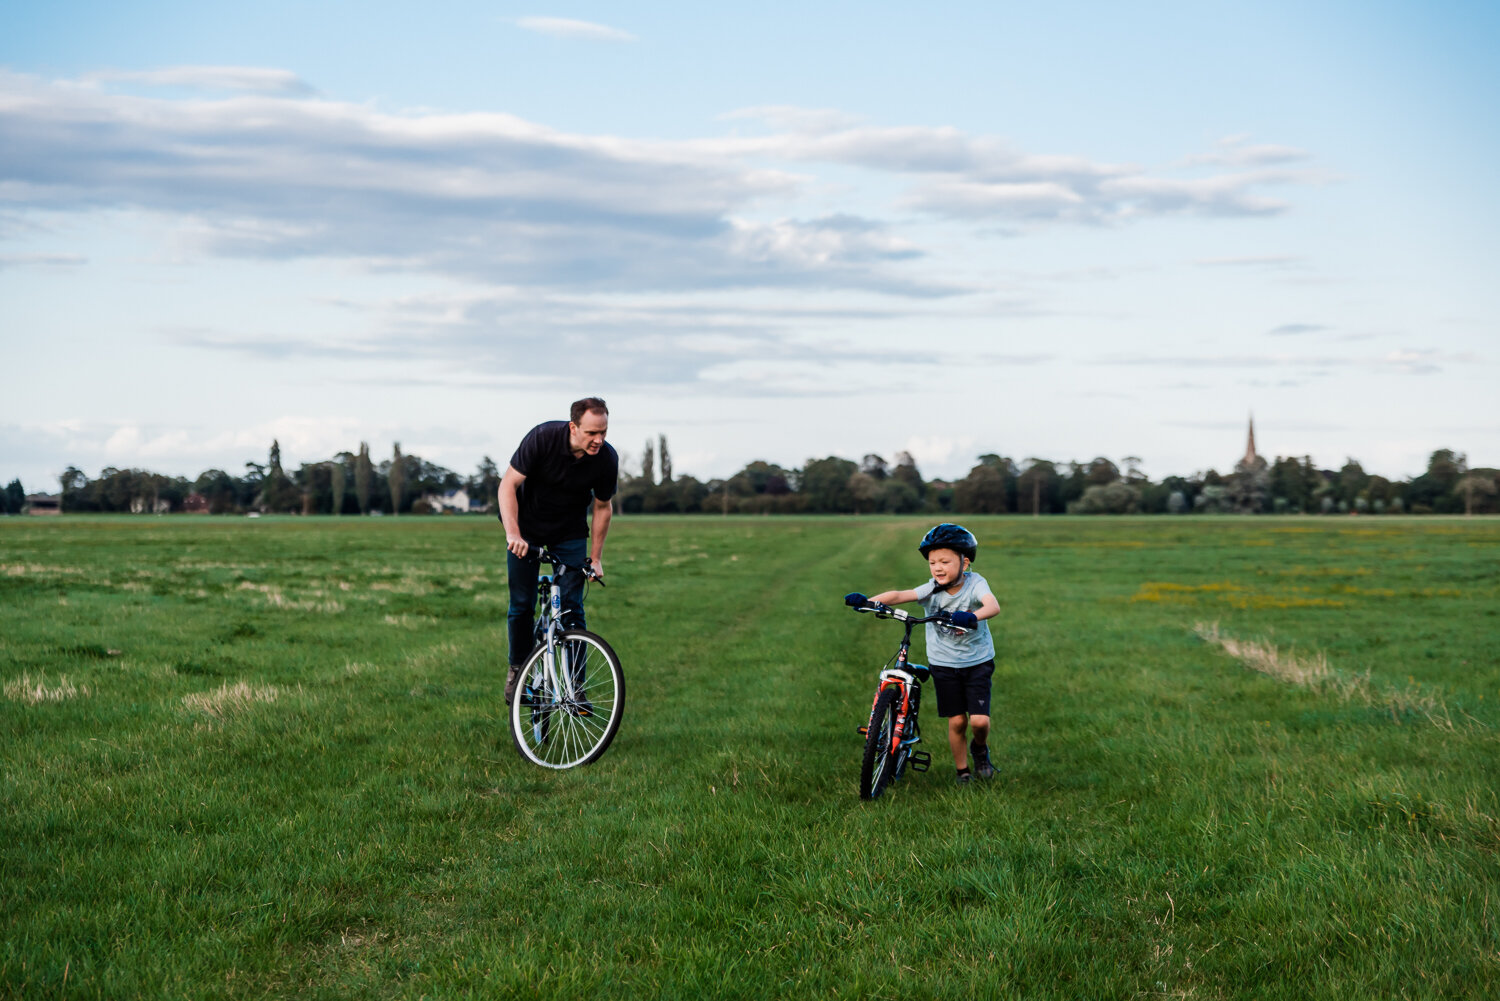 Father and son riding their bikes across a field